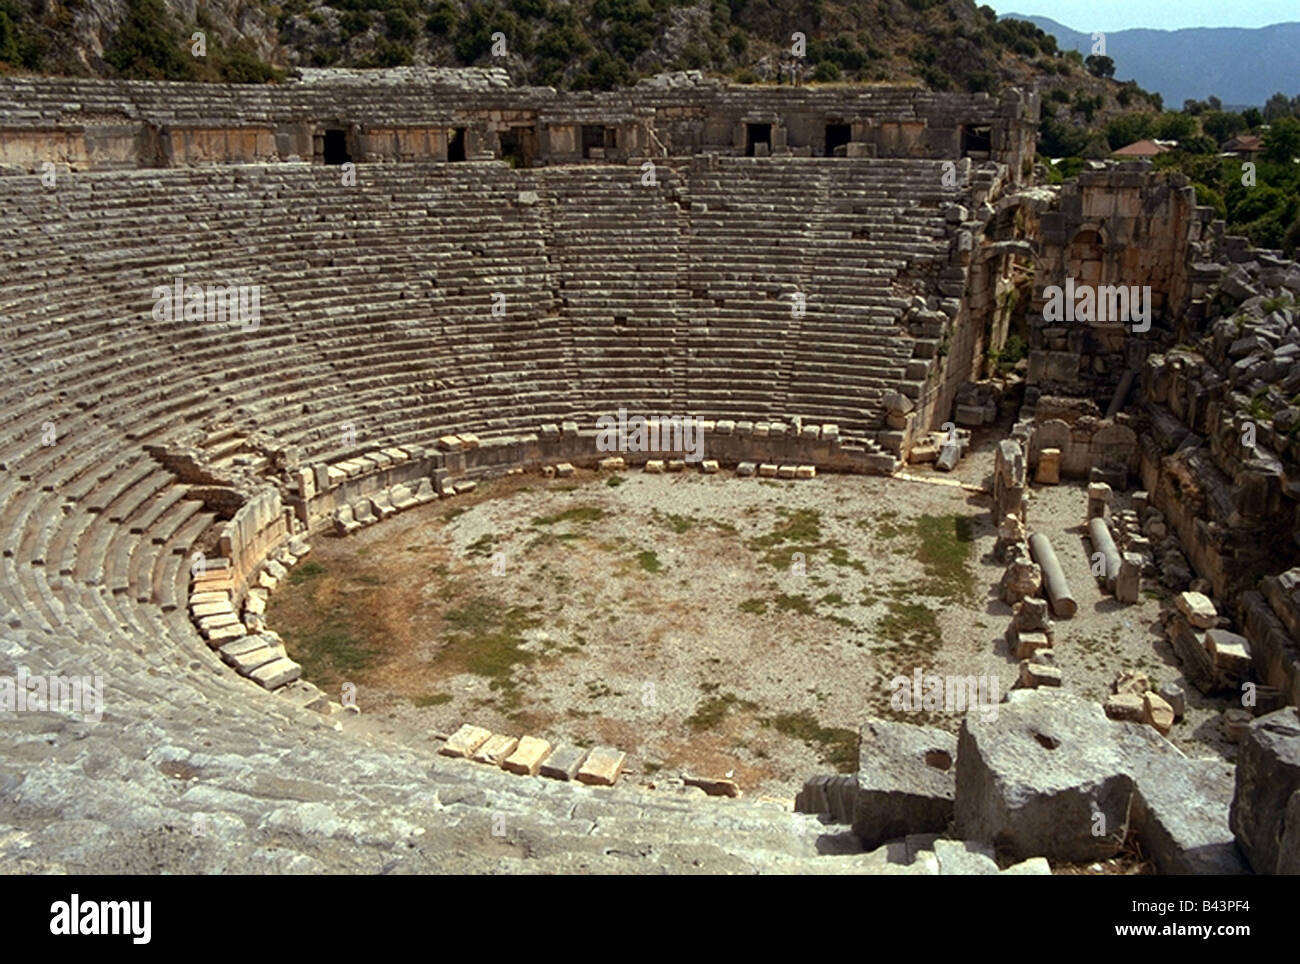 Geografía / viajes, Turquía, Myra, teatro, antigüedad, , Additional-Rights-Clearance-Info-Not-Available Imagen De Stock